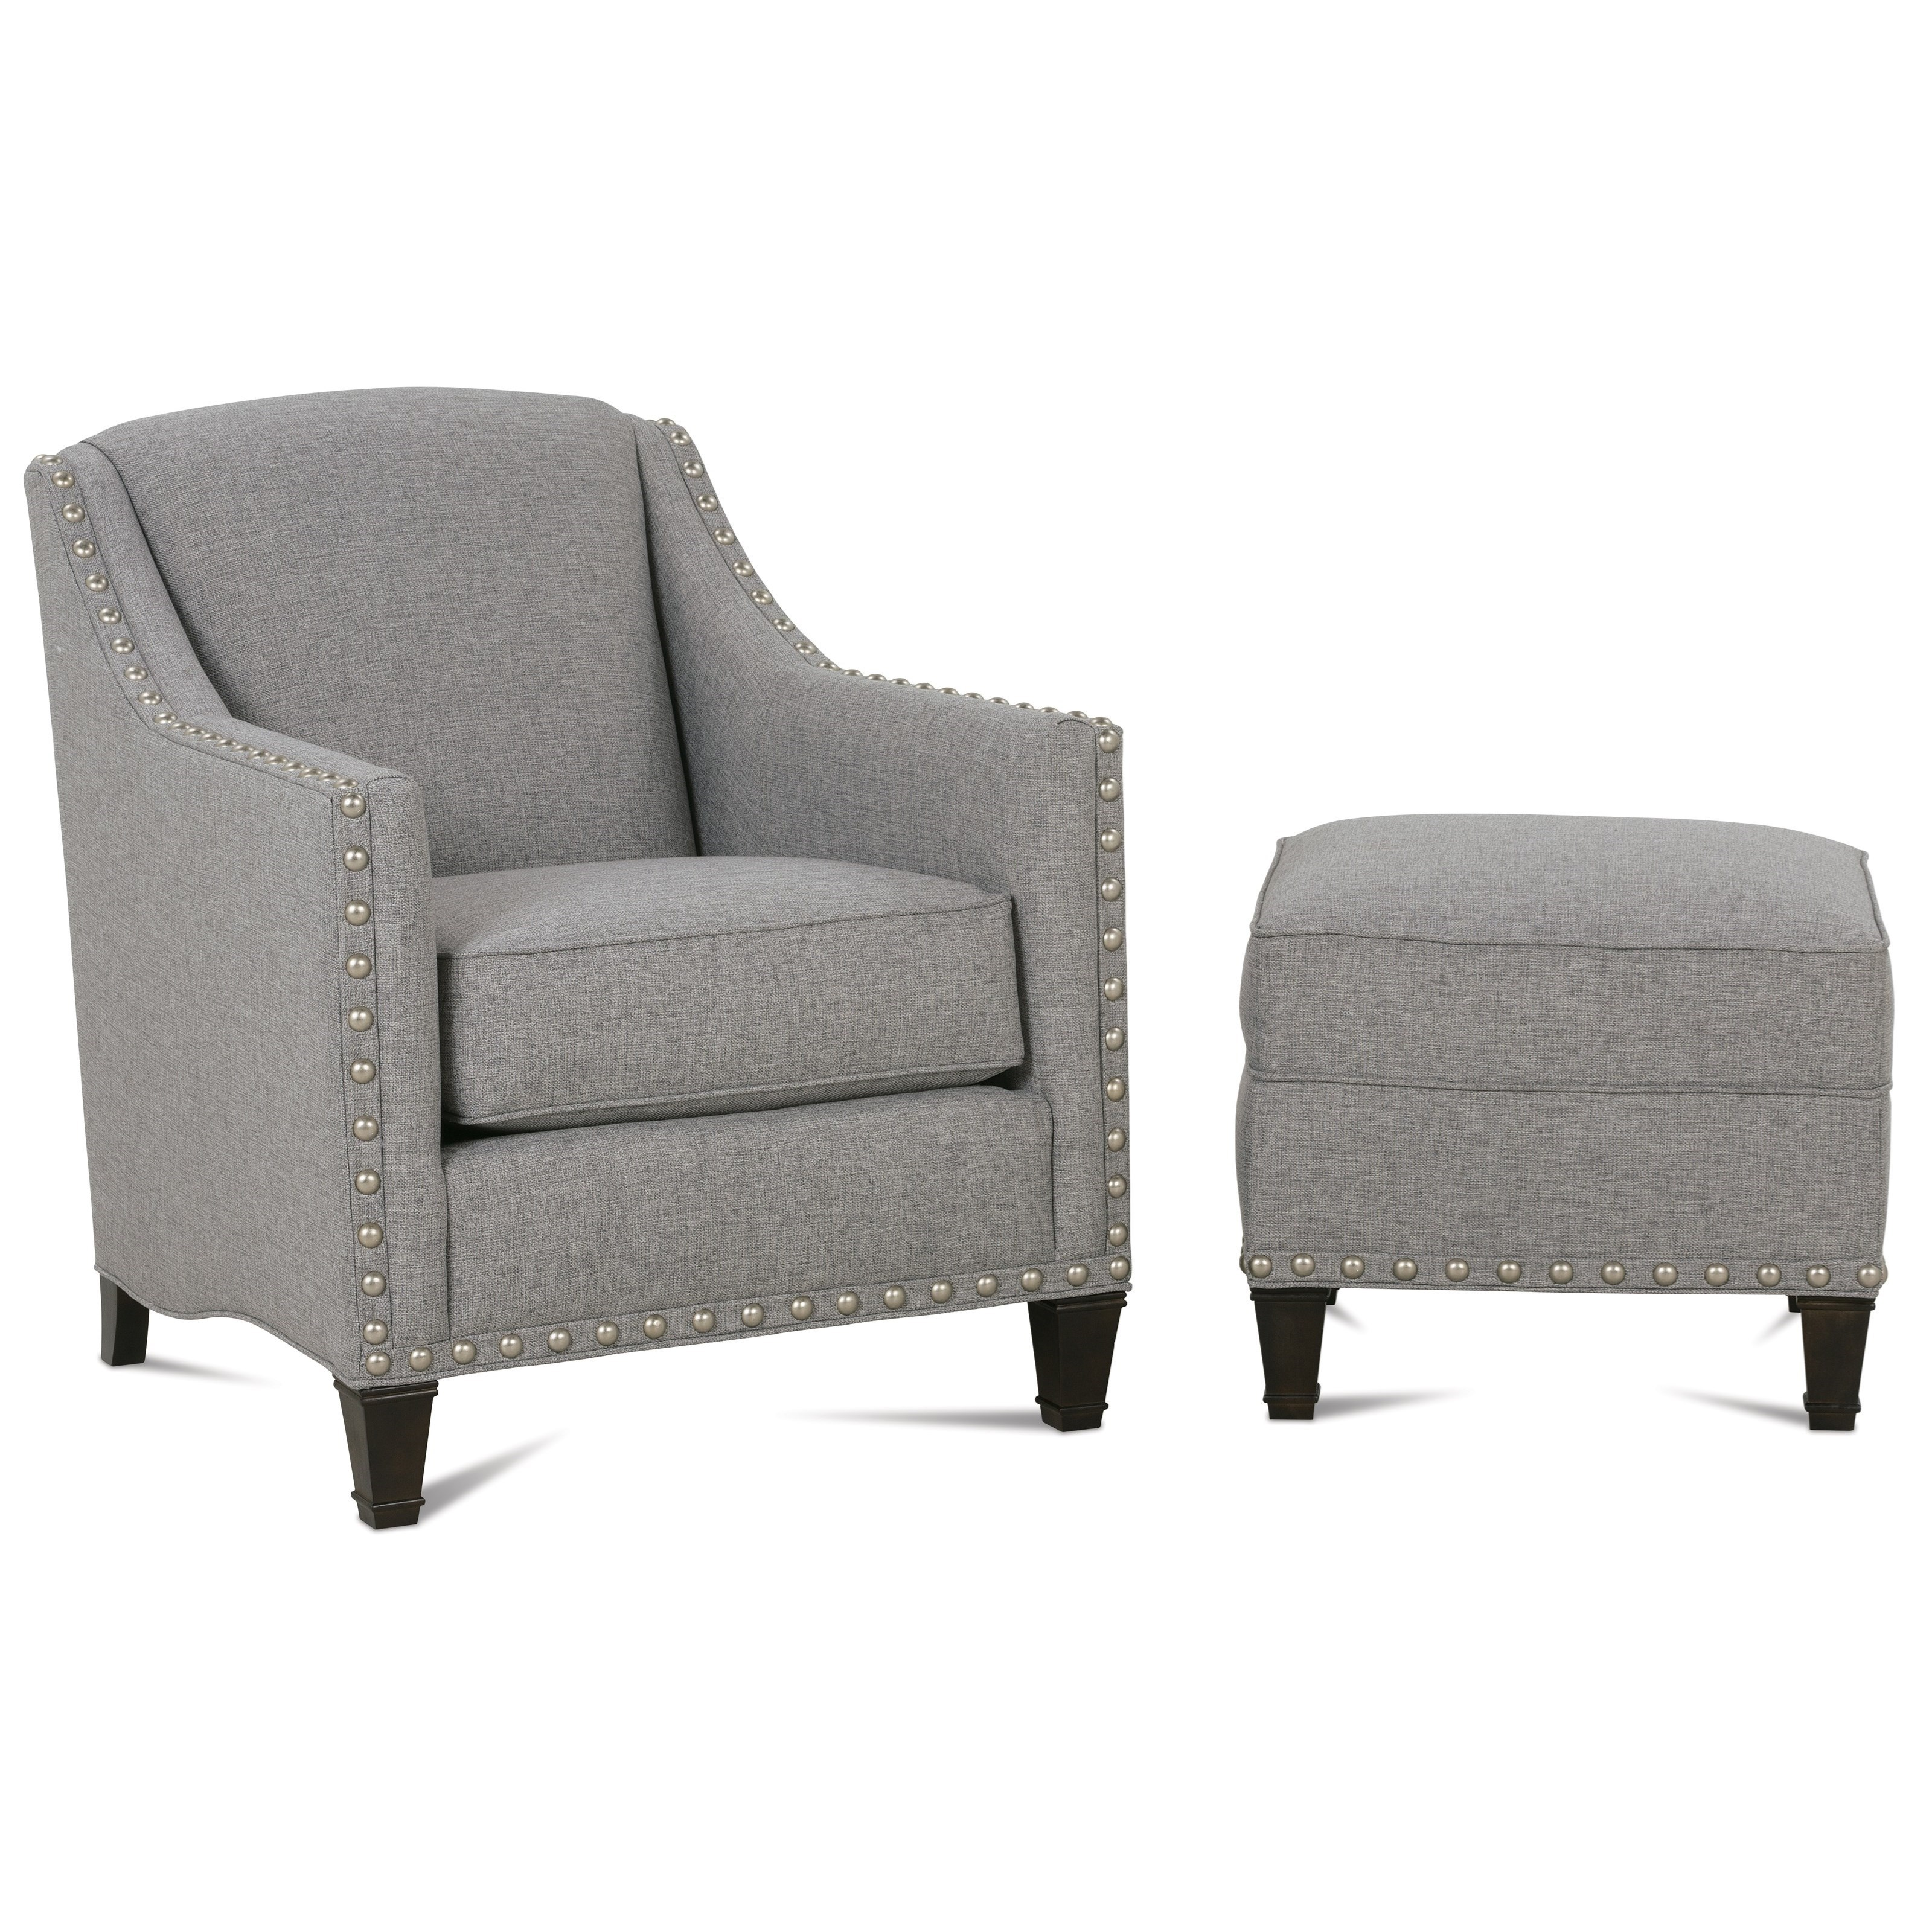 Rockford Traditional Upholstered Chair & Ottoman by Rowe at Baer's Furniture